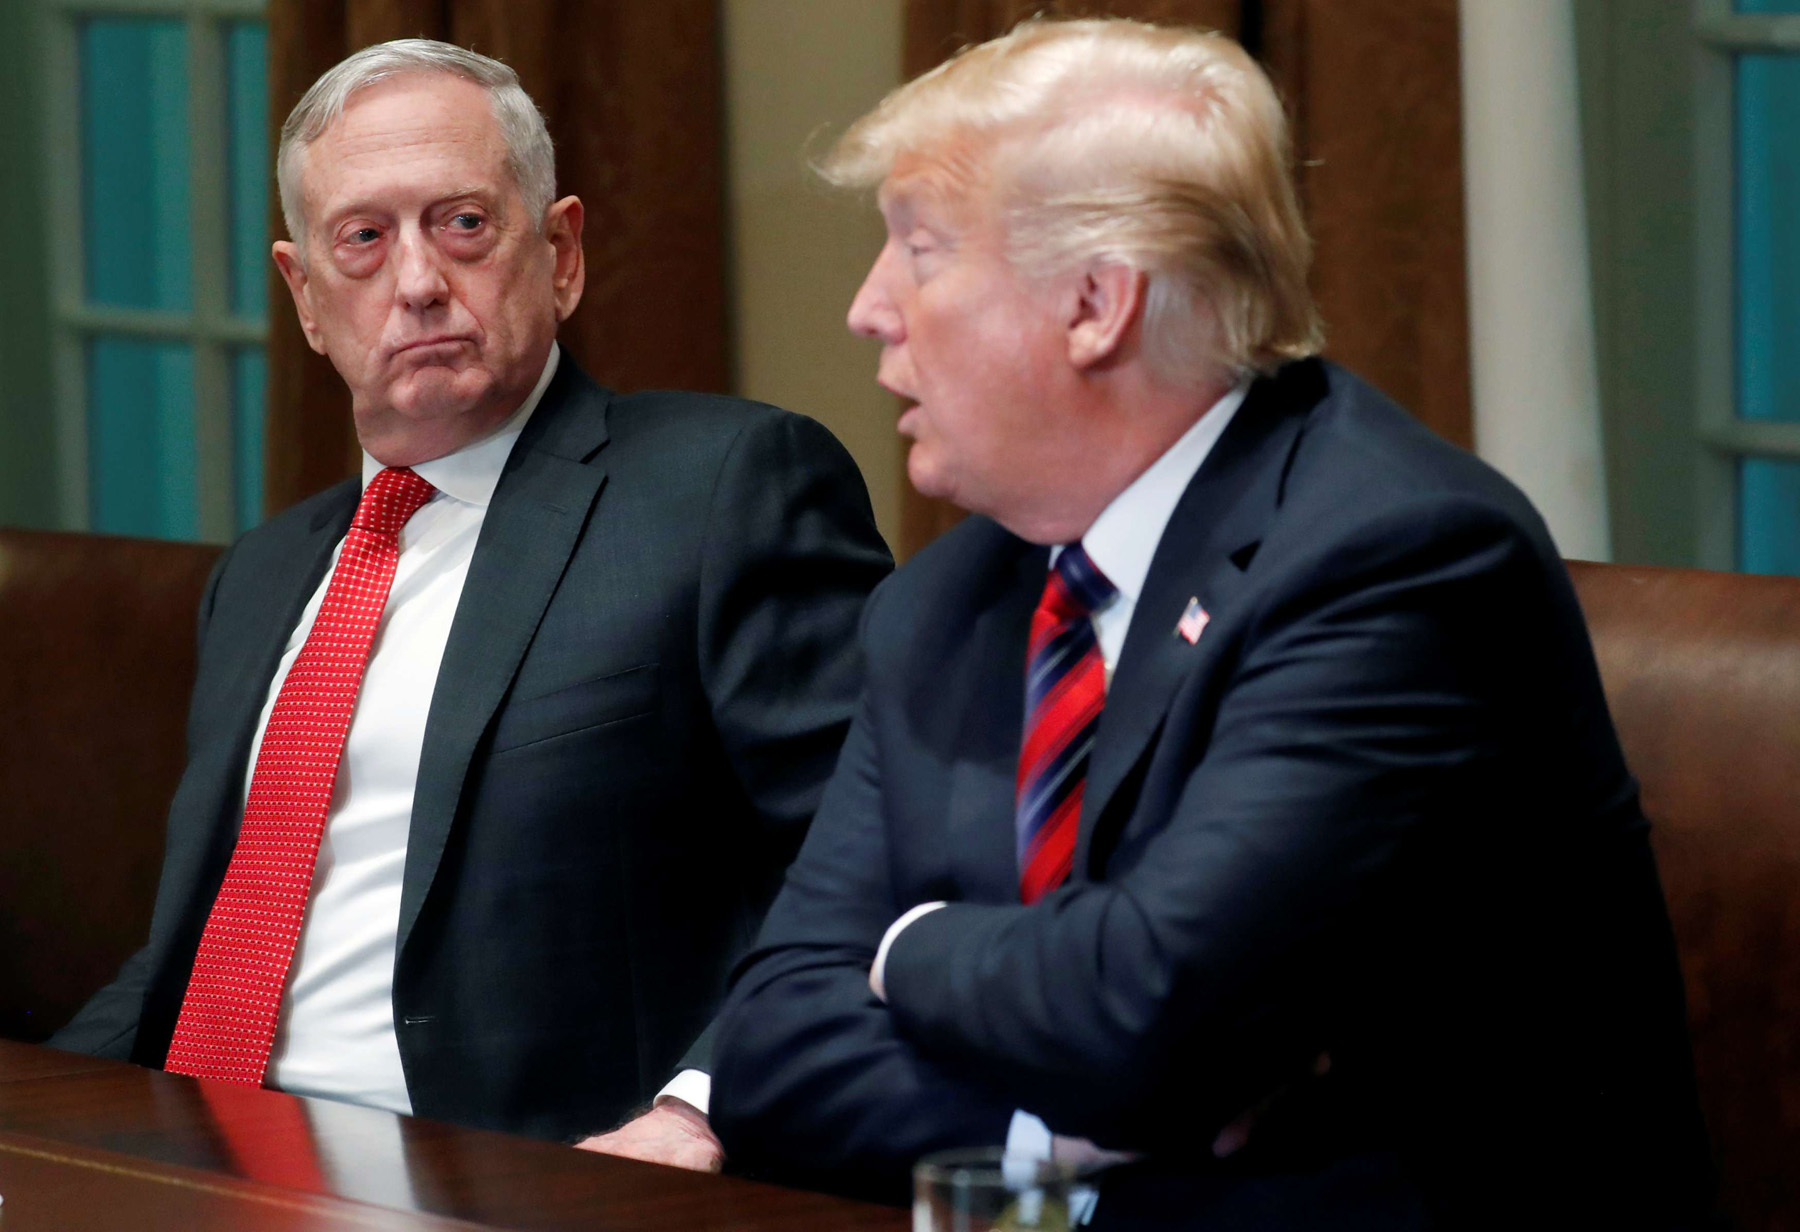 US Defense Secretary James Mattis listens (L) as US President Donald Trump speaks at the White House in Washington, on October 23. (Reuters)